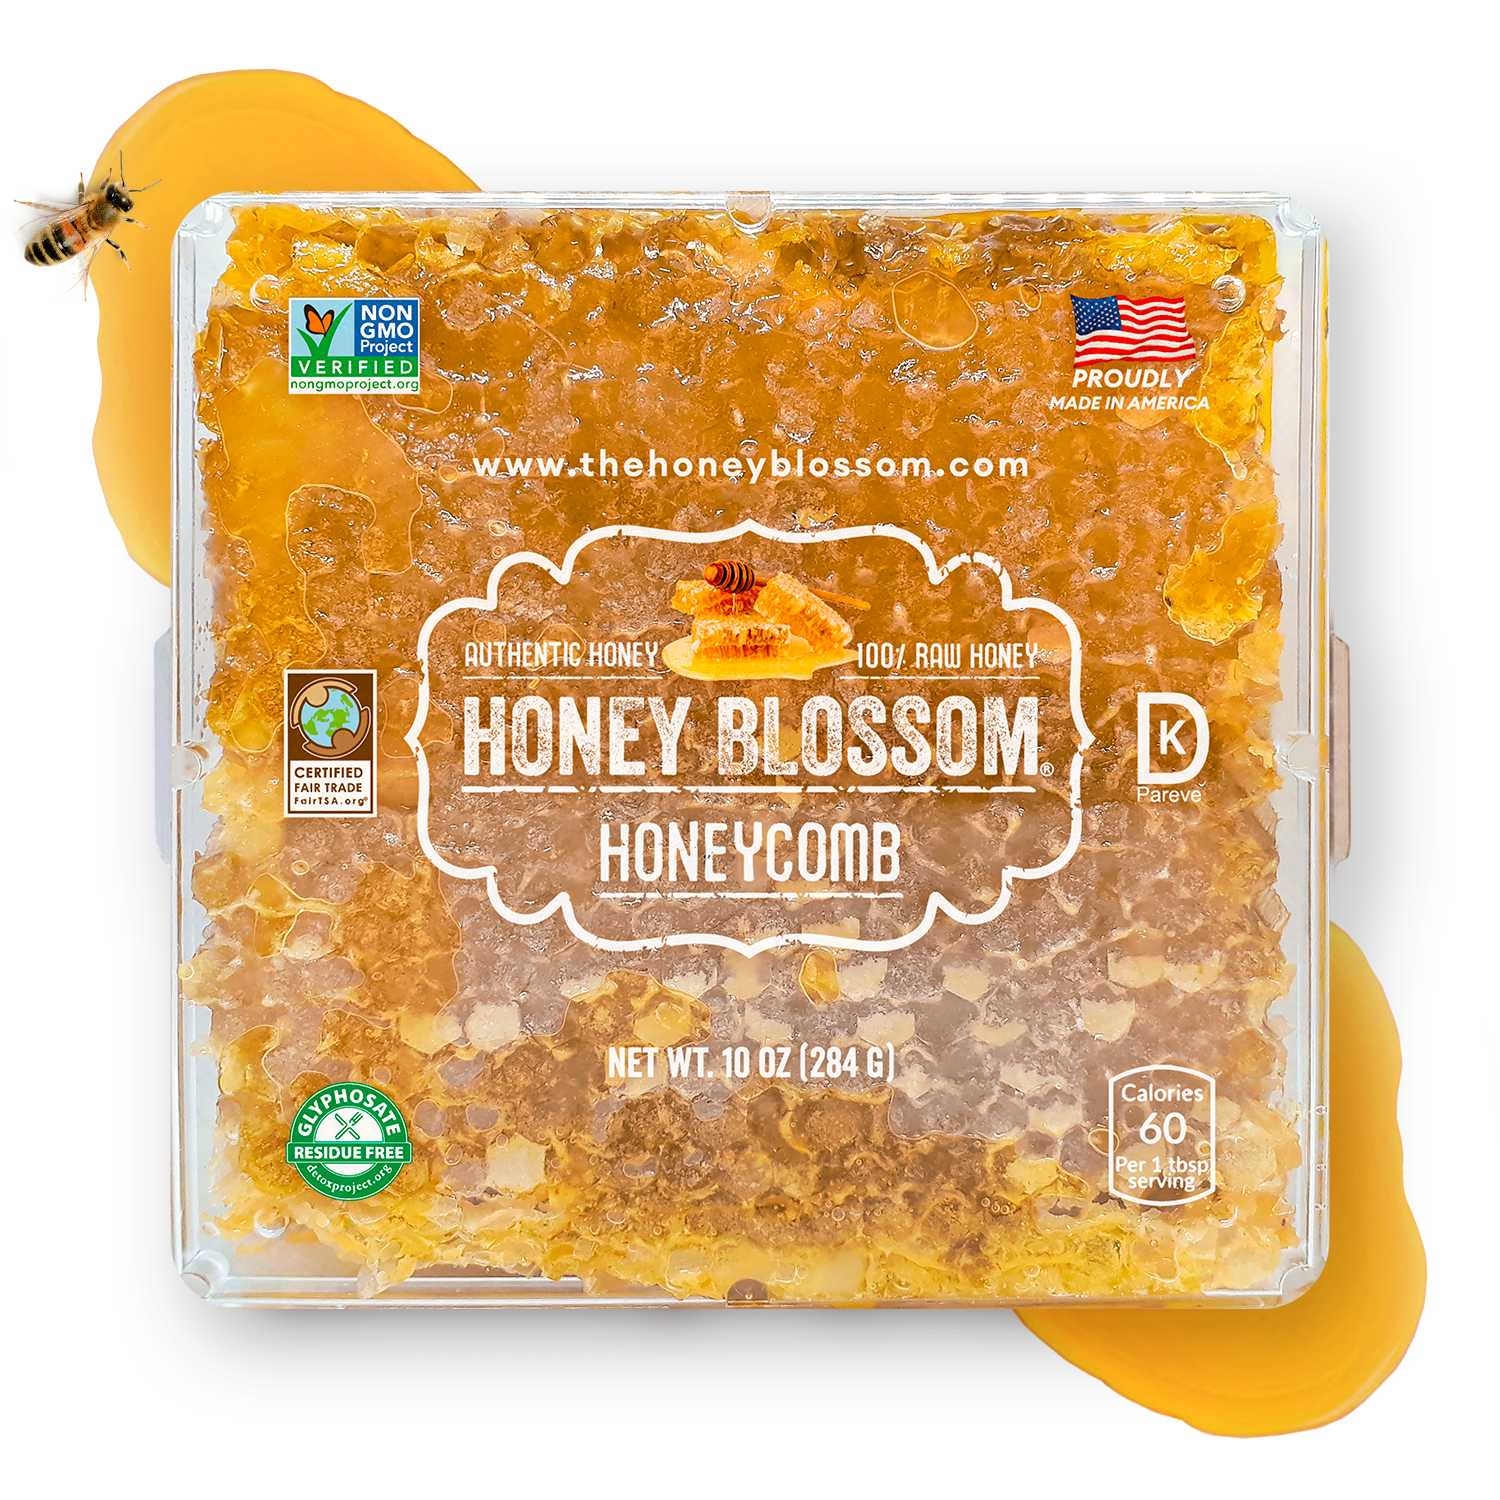 Image of Honey Blossom honeycomb on a surface, with honey spilled on its ends and a bee eating from it.